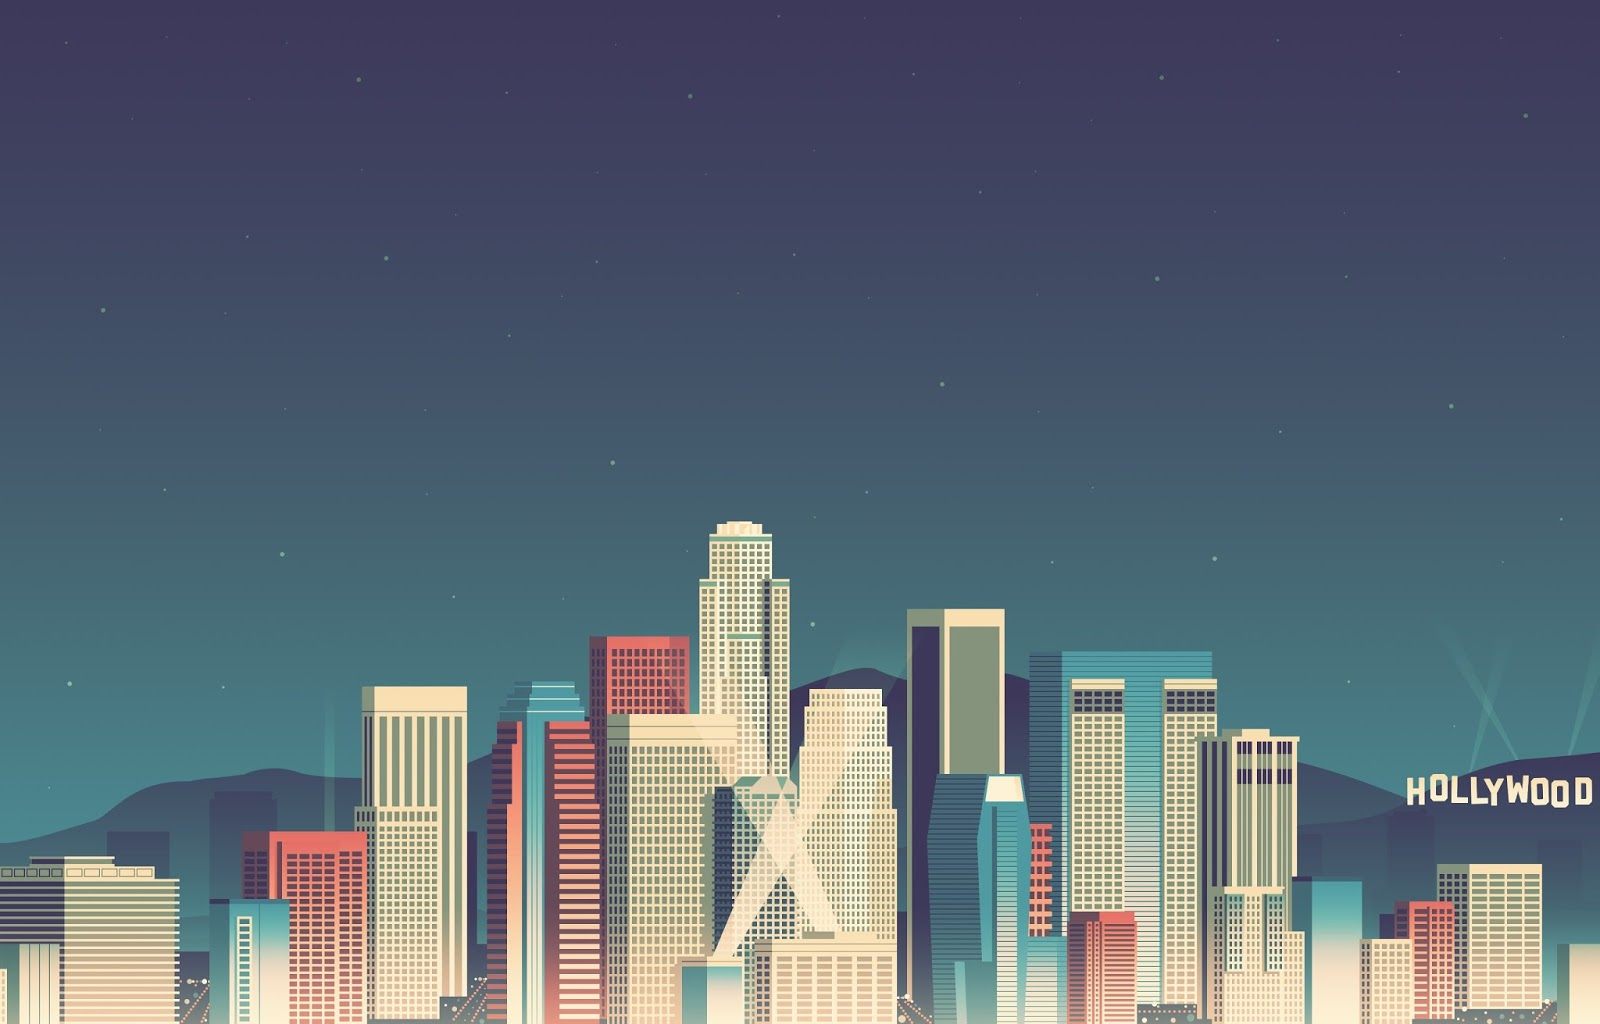 8 bit city wallpaper